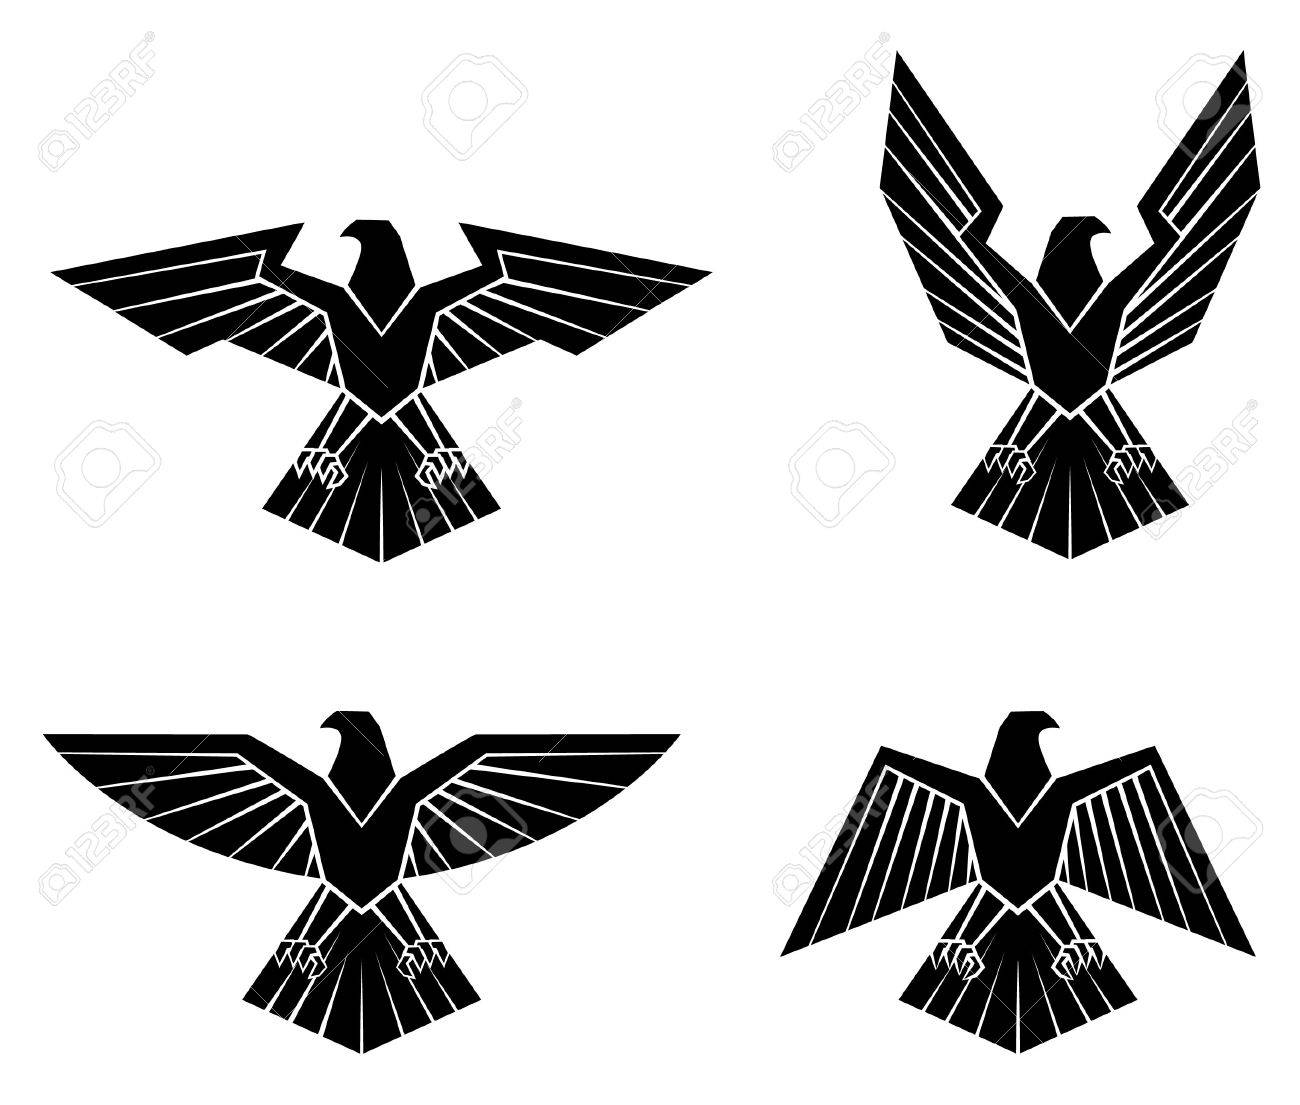 7868 eagle drawing cliparts stock vector and royalty free eagle black silhouette collection of eagle symbol illustration biocorpaavc Gallery